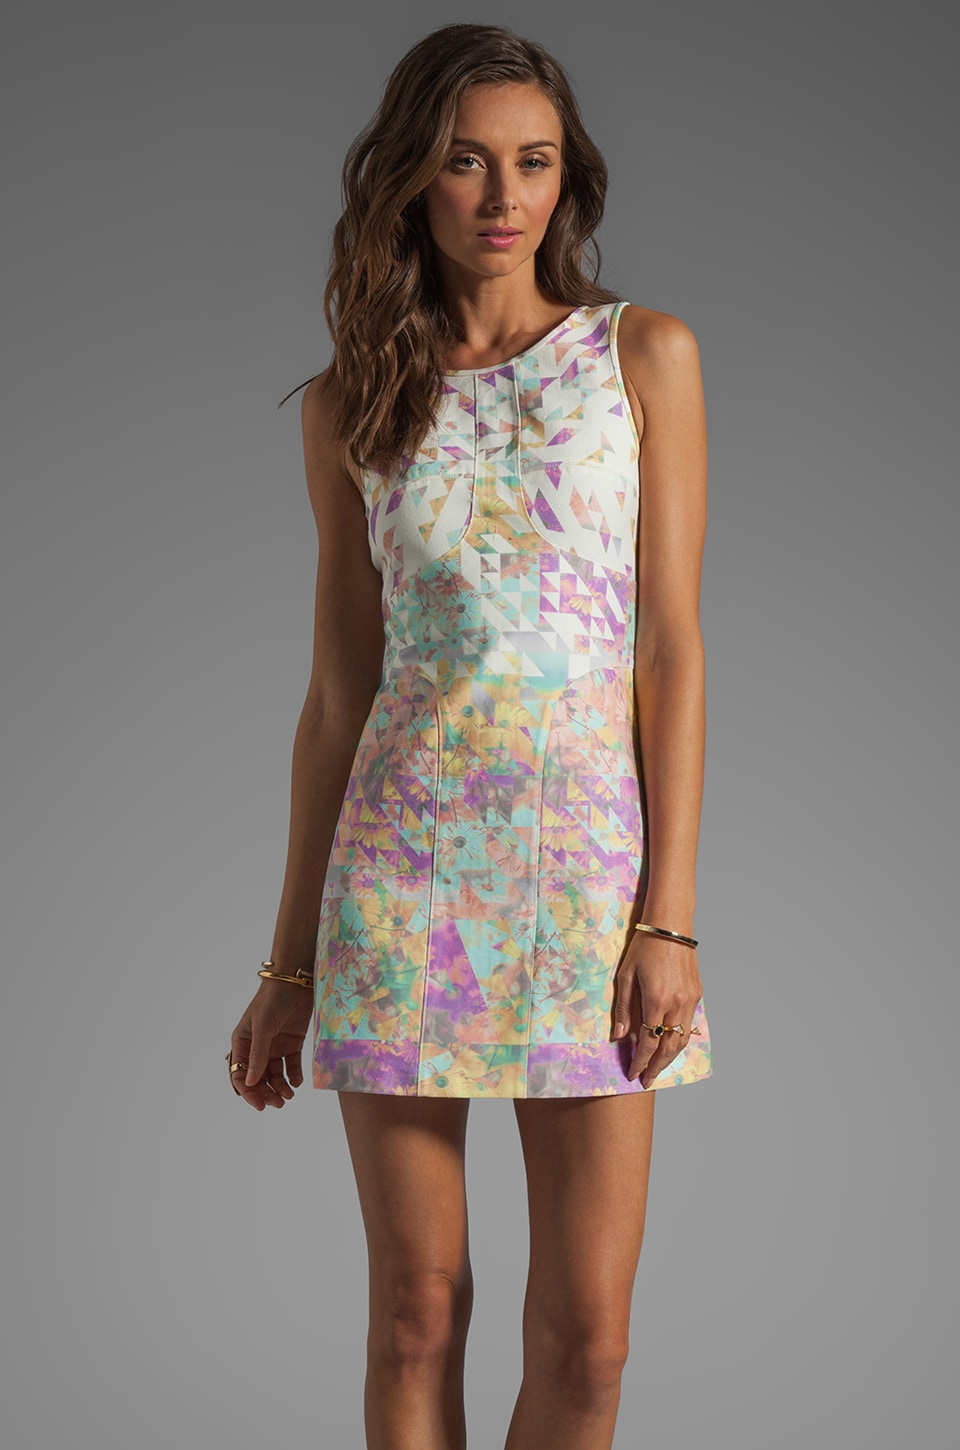 Tibi Velocity Dress in Pastel Multi